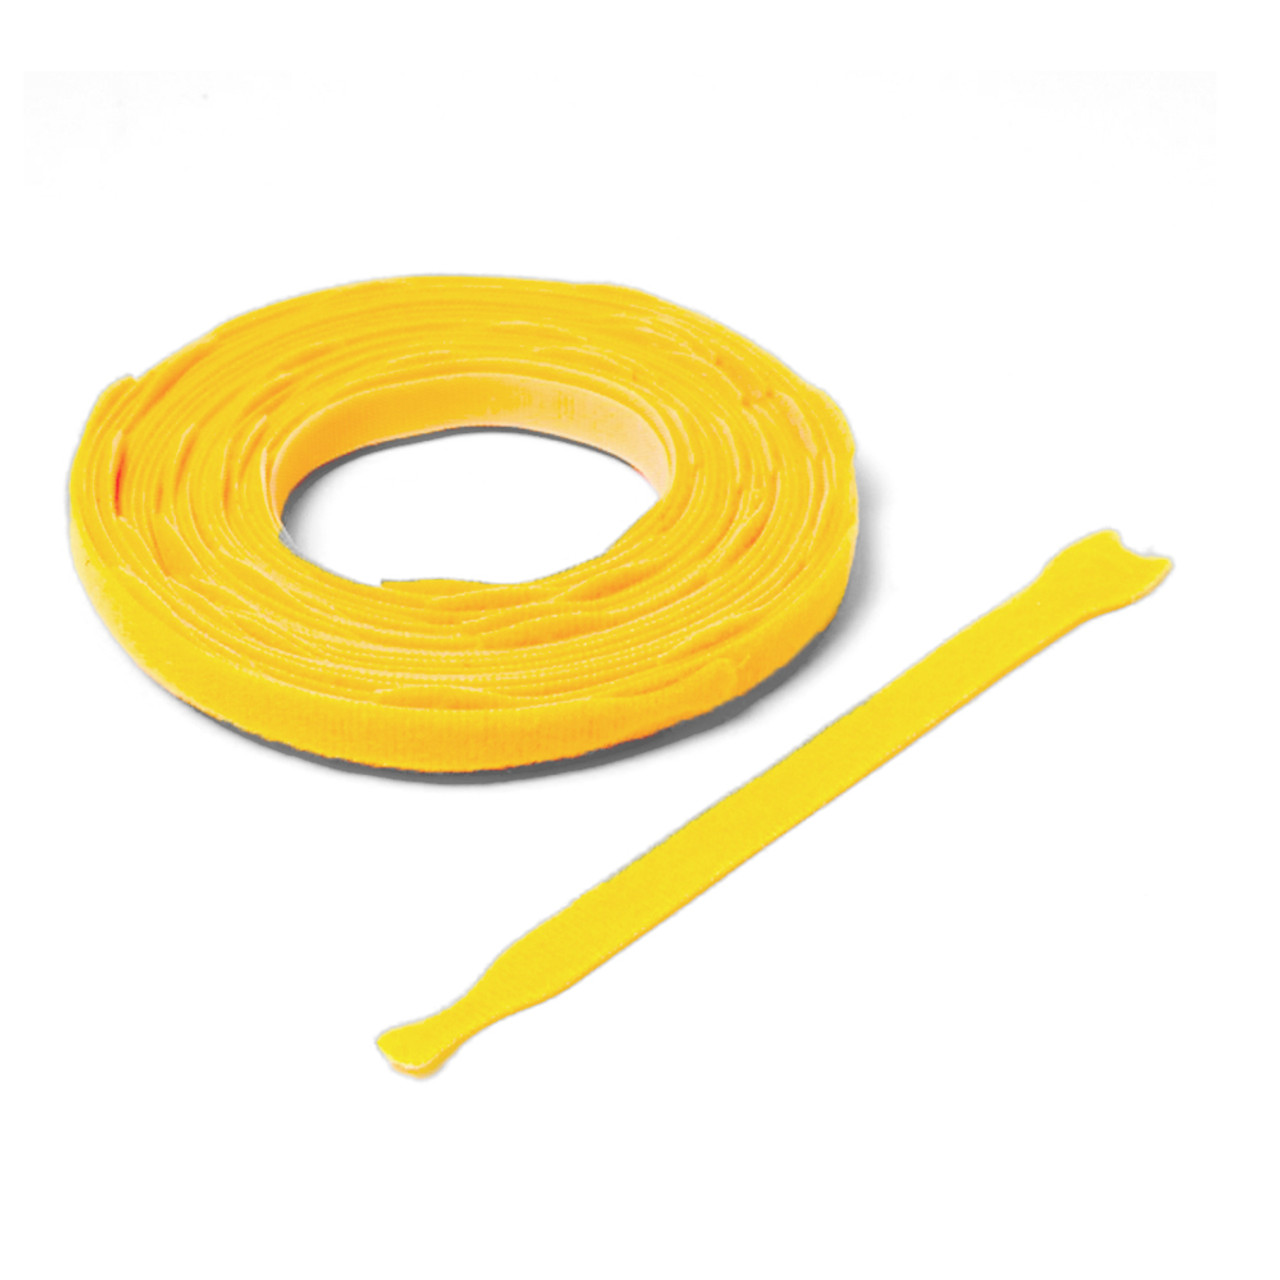 VELCRO ® Brand ONE-WRAP ® Die-Cut Straps - Yellow  / Velcro Straps - Bundling Straps - Velcro Tie - Velcro Strap